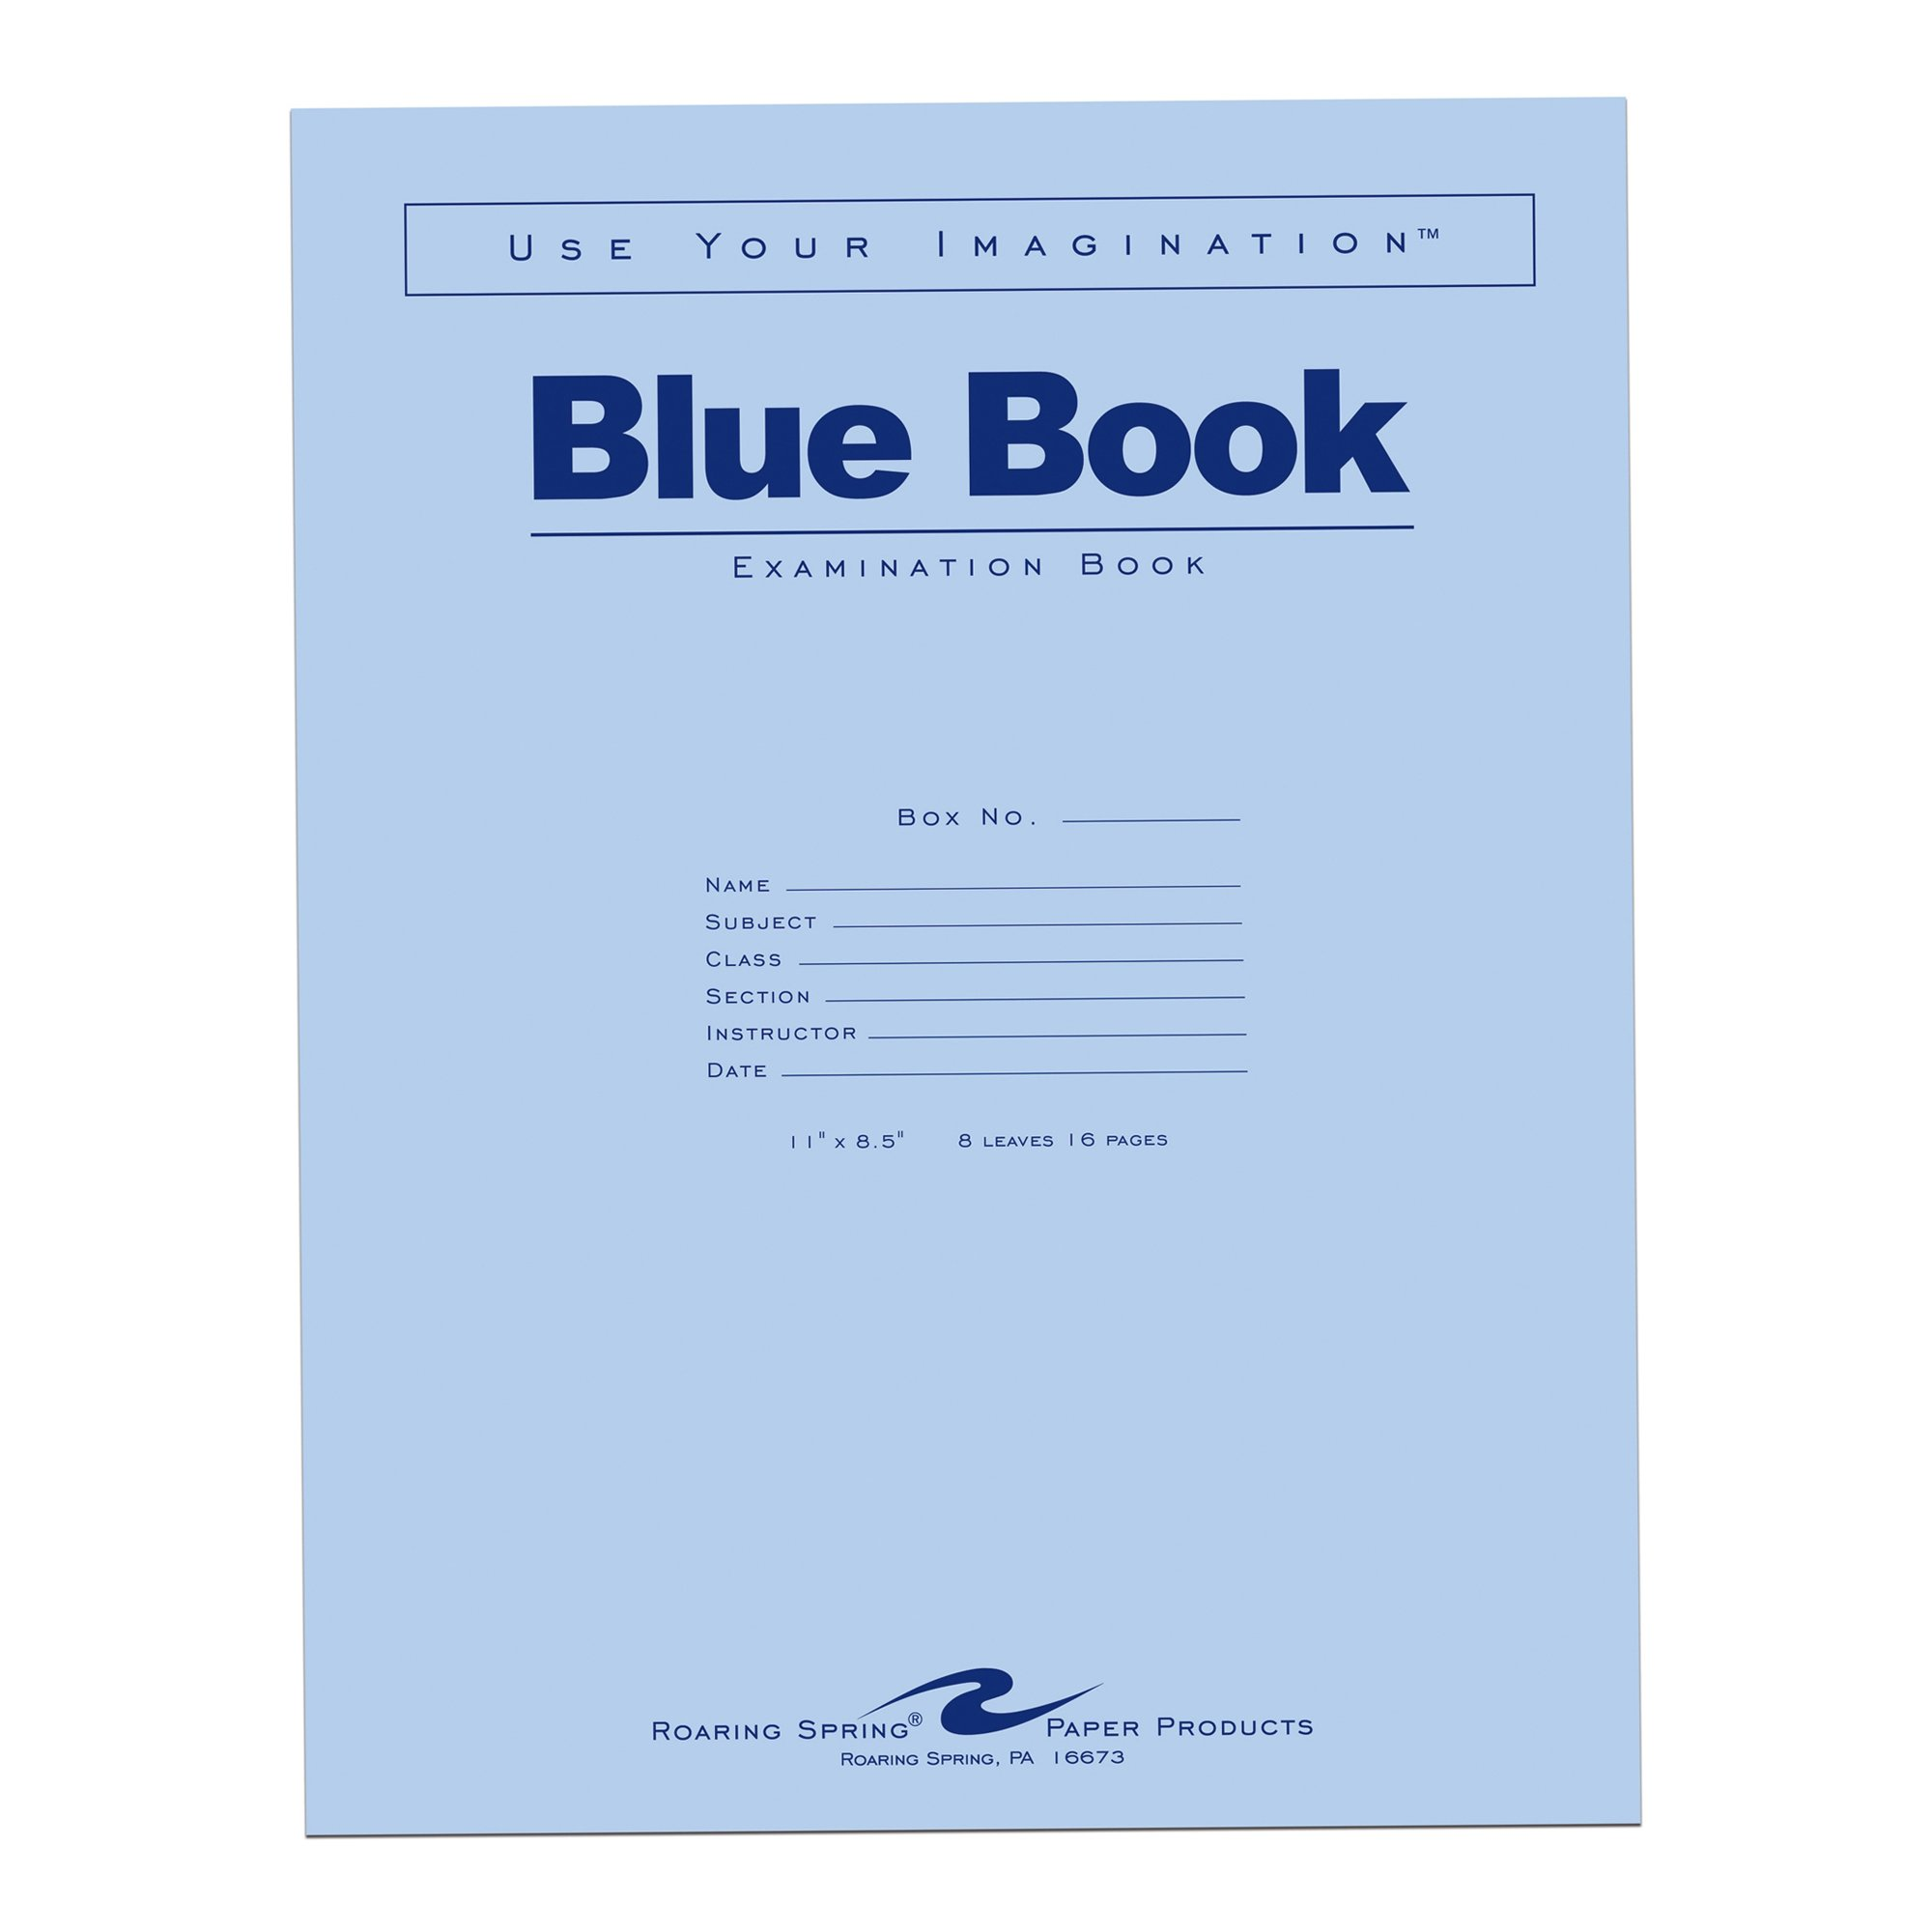 Case of 500 Exam Books, 11''x8.5'', 8 sheets/16 pages of 15# Smooth White Paper, Wide Ruled W/Margin, Heavy Blue Cover, Stapled by Roaring Spring Paper Products